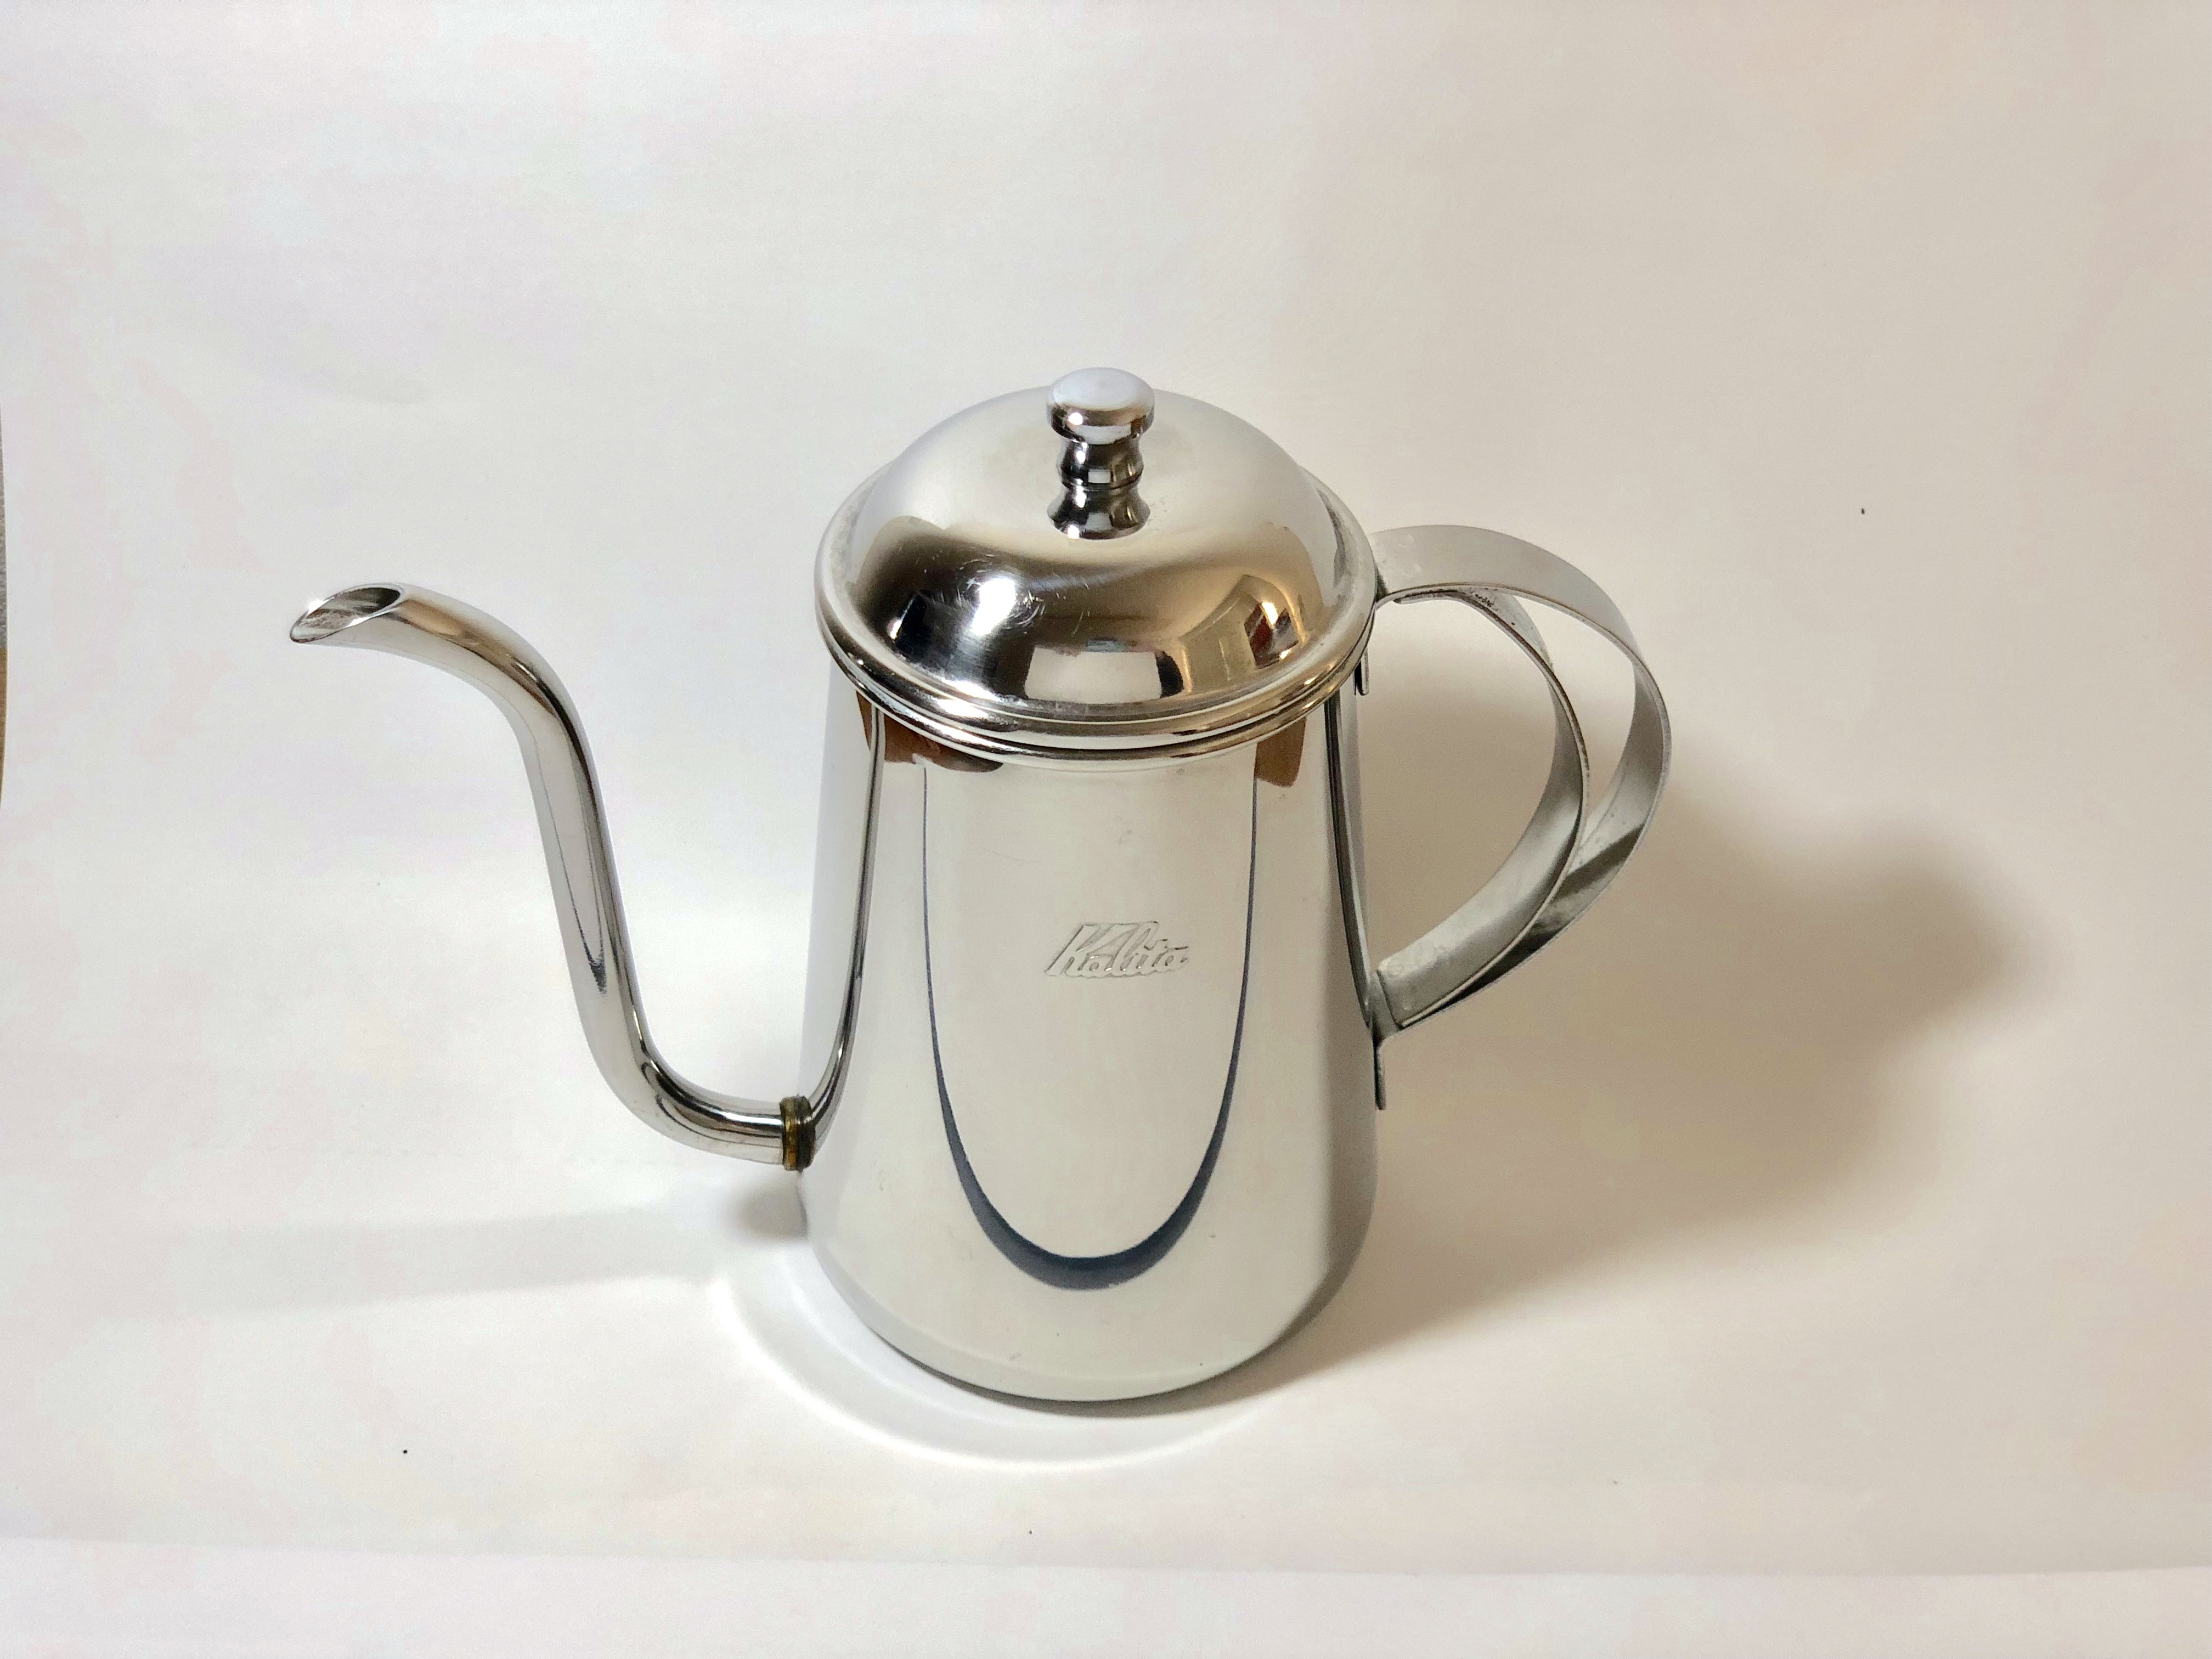 Kalita Thin-Spout Pot / 細口ポット0.7ℓ*